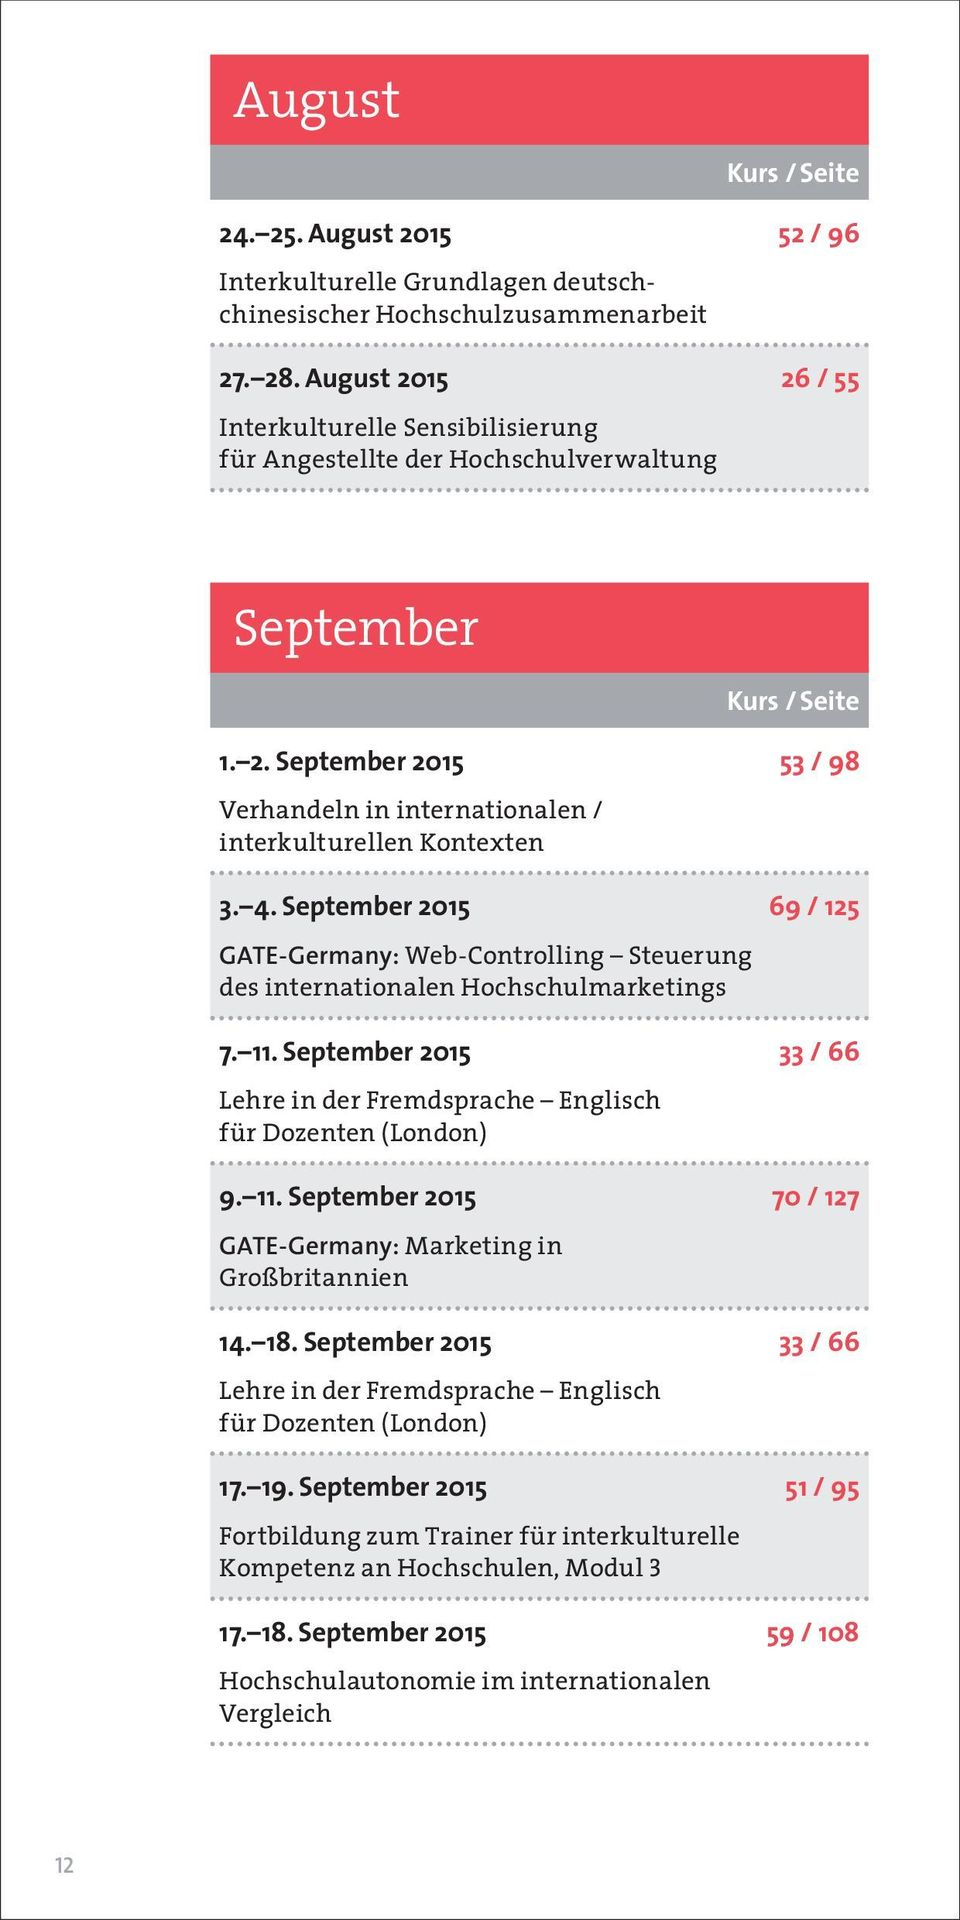 4. September 2015 69 / 125 GATE-Germany: Web-Controlling Steuerung des internationalen Hochschulmarketings 7. 11. September 2015 33 / 66 Lehre in der Fremdsprache Englisch für Dozenten (London) 9. 11. September 2015 70 / 127 GATE-Germany: Marketing in Großbritannien 14.